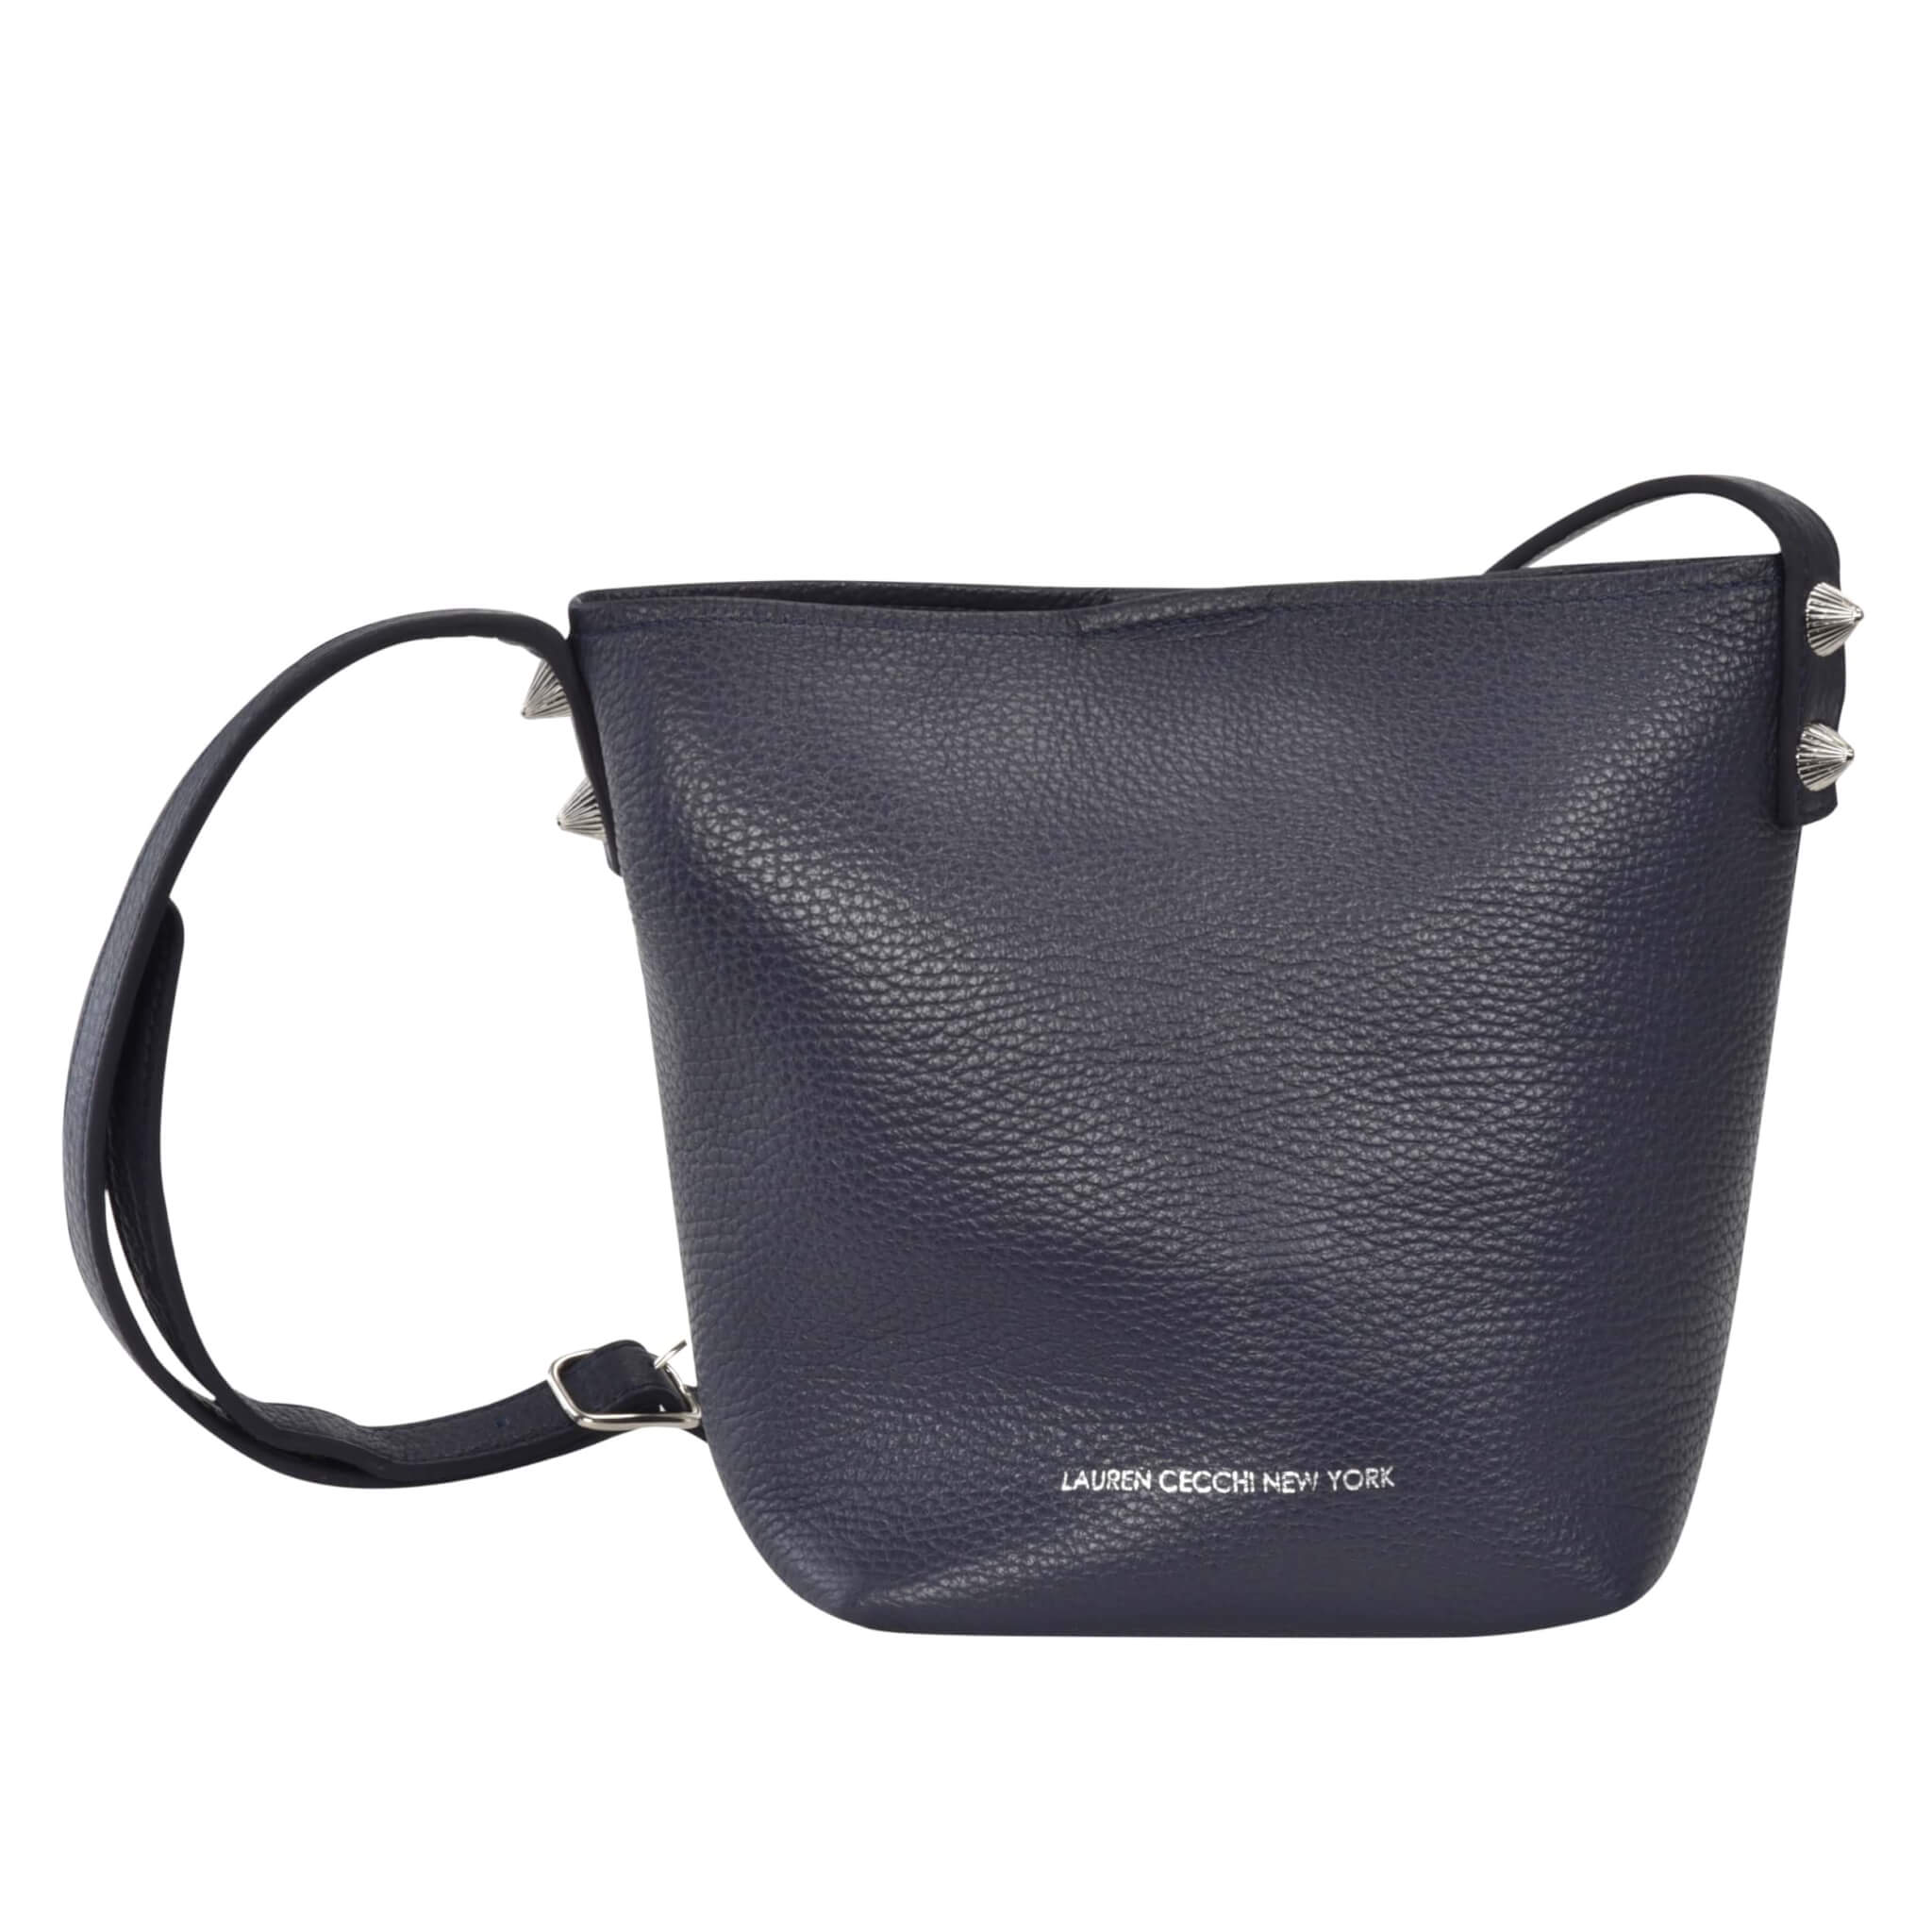 7b422099e108 Buy Stylish Handbags Online Shop for Women Made in NYC